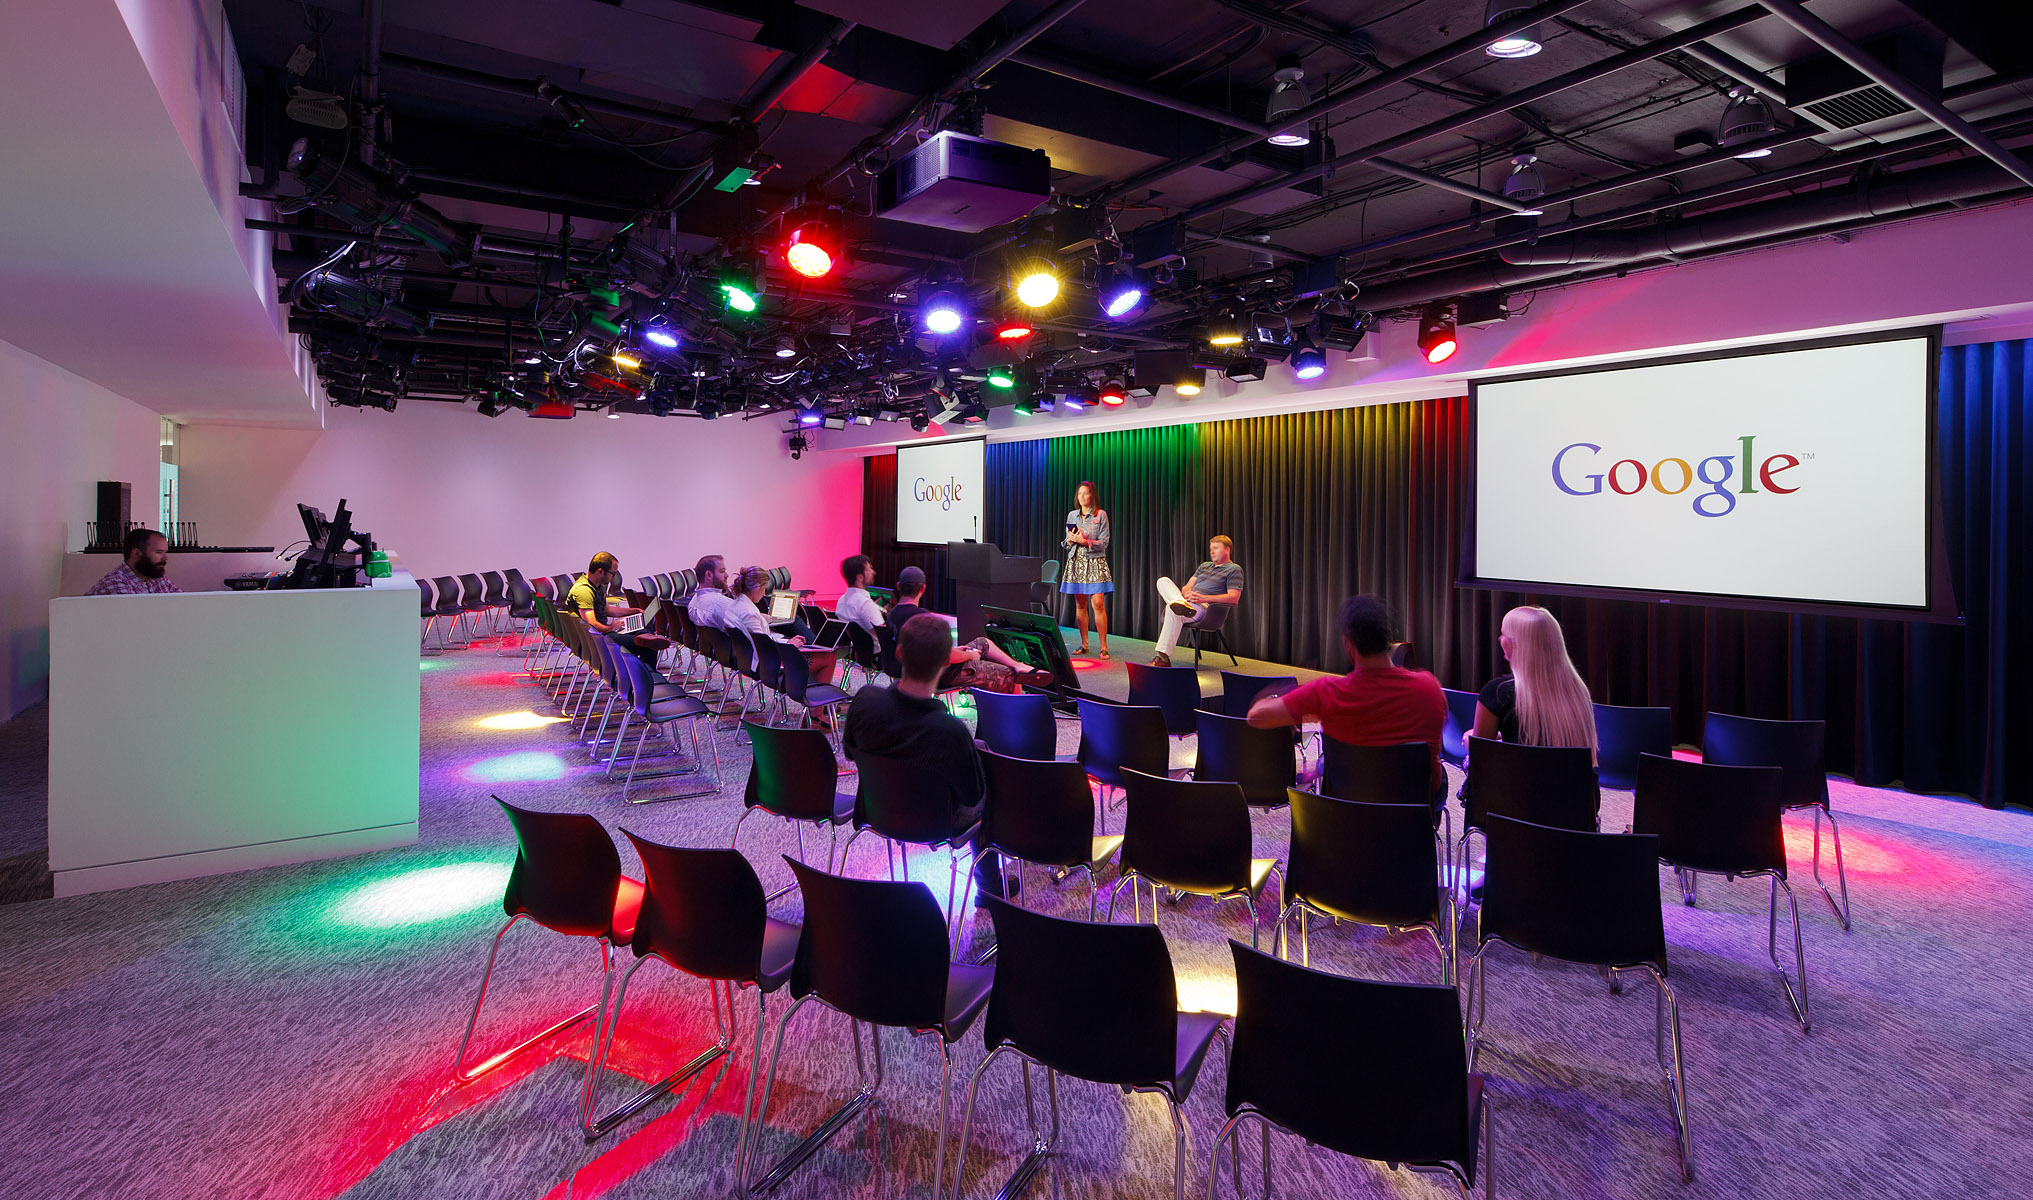 GoogleGovernment Affairs OfficeWashington, DCVOA AssociatesIIDA Mid-Atlantic Honor Award 2015